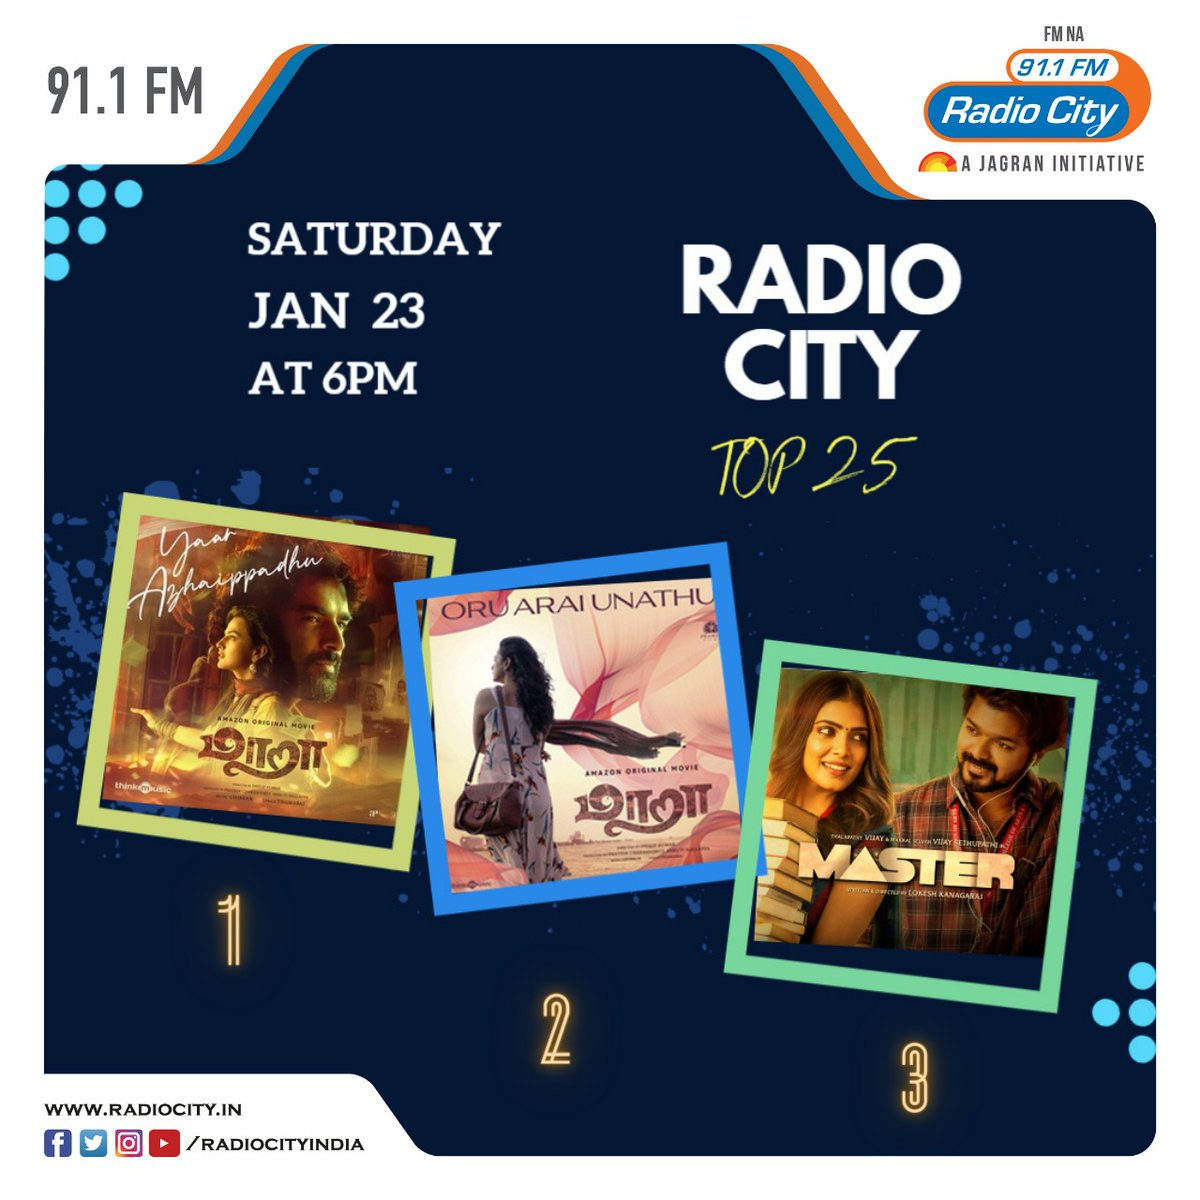 #RadioCityChennai  #TOP25  Top Three Songs of the week !!  #Maara #Master @GhibranOfficial @anirudhofficial  @thinkmusicindia @SonyMusicSouth